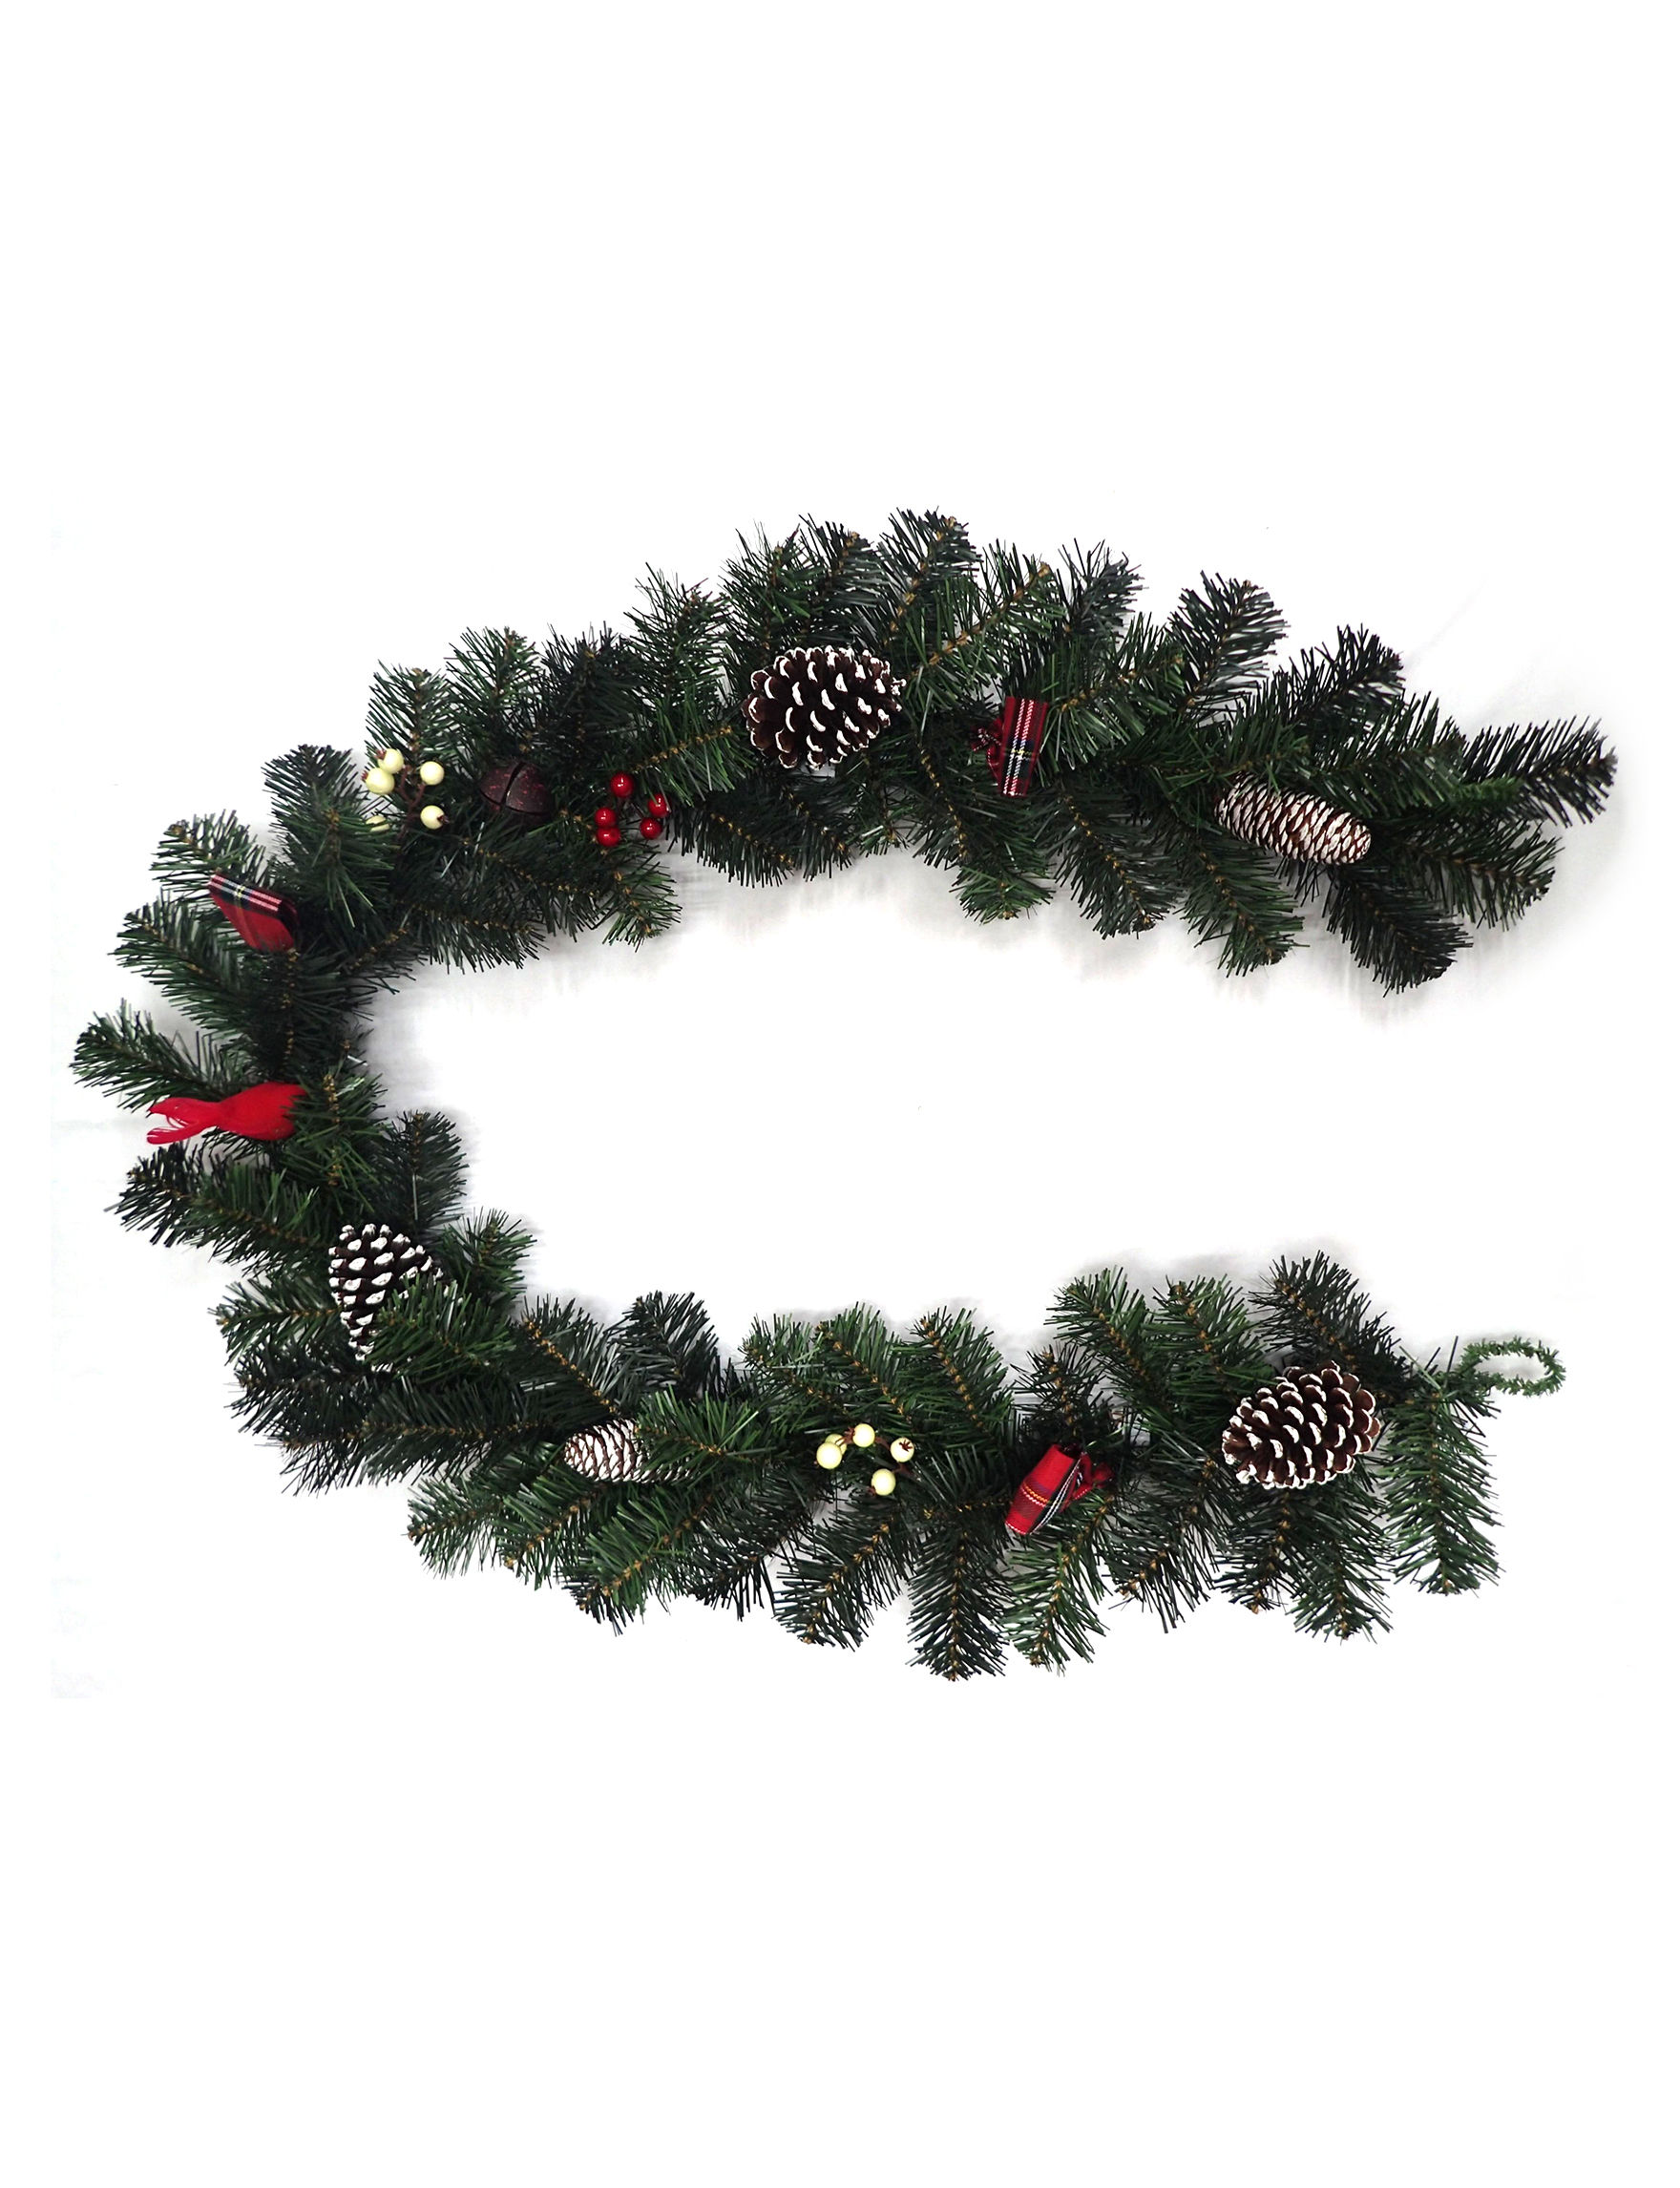 Evernoble Limit Dark Green Wreaths & Garland Holiday Decor